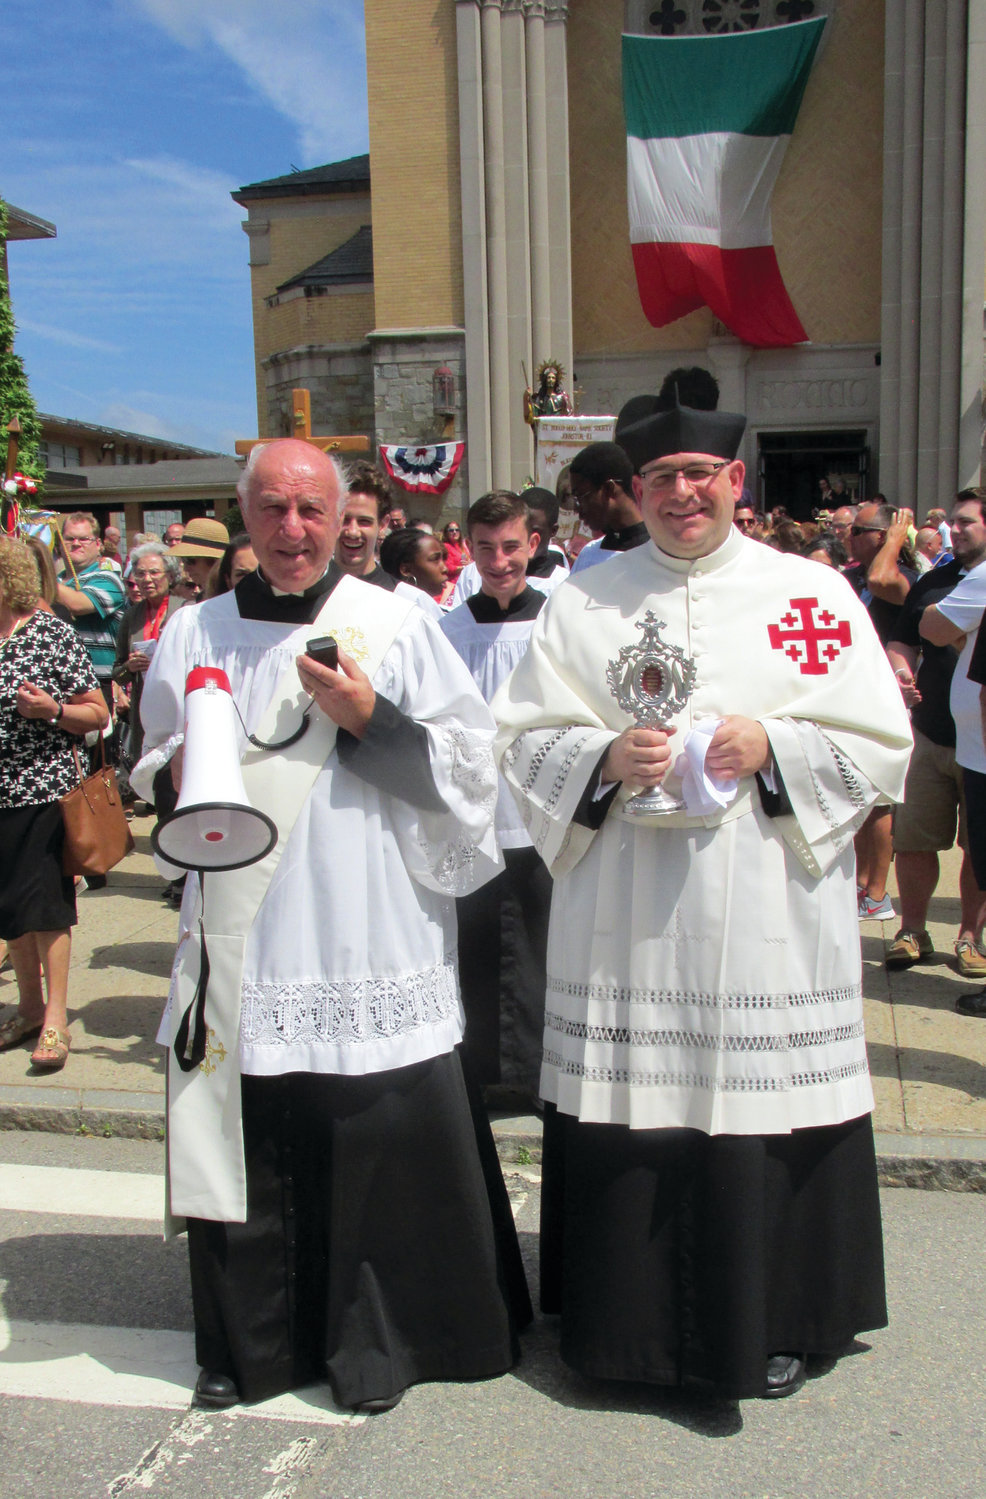 DELIGHTFUL DUTY: The Rev. Angelo Carusi, right, pastor at Saint Rocco's Church in Johnston, will be offering special blessings during the century-old procession after the 11 o'clock solemn Mass on Sunday, Aug. 18.